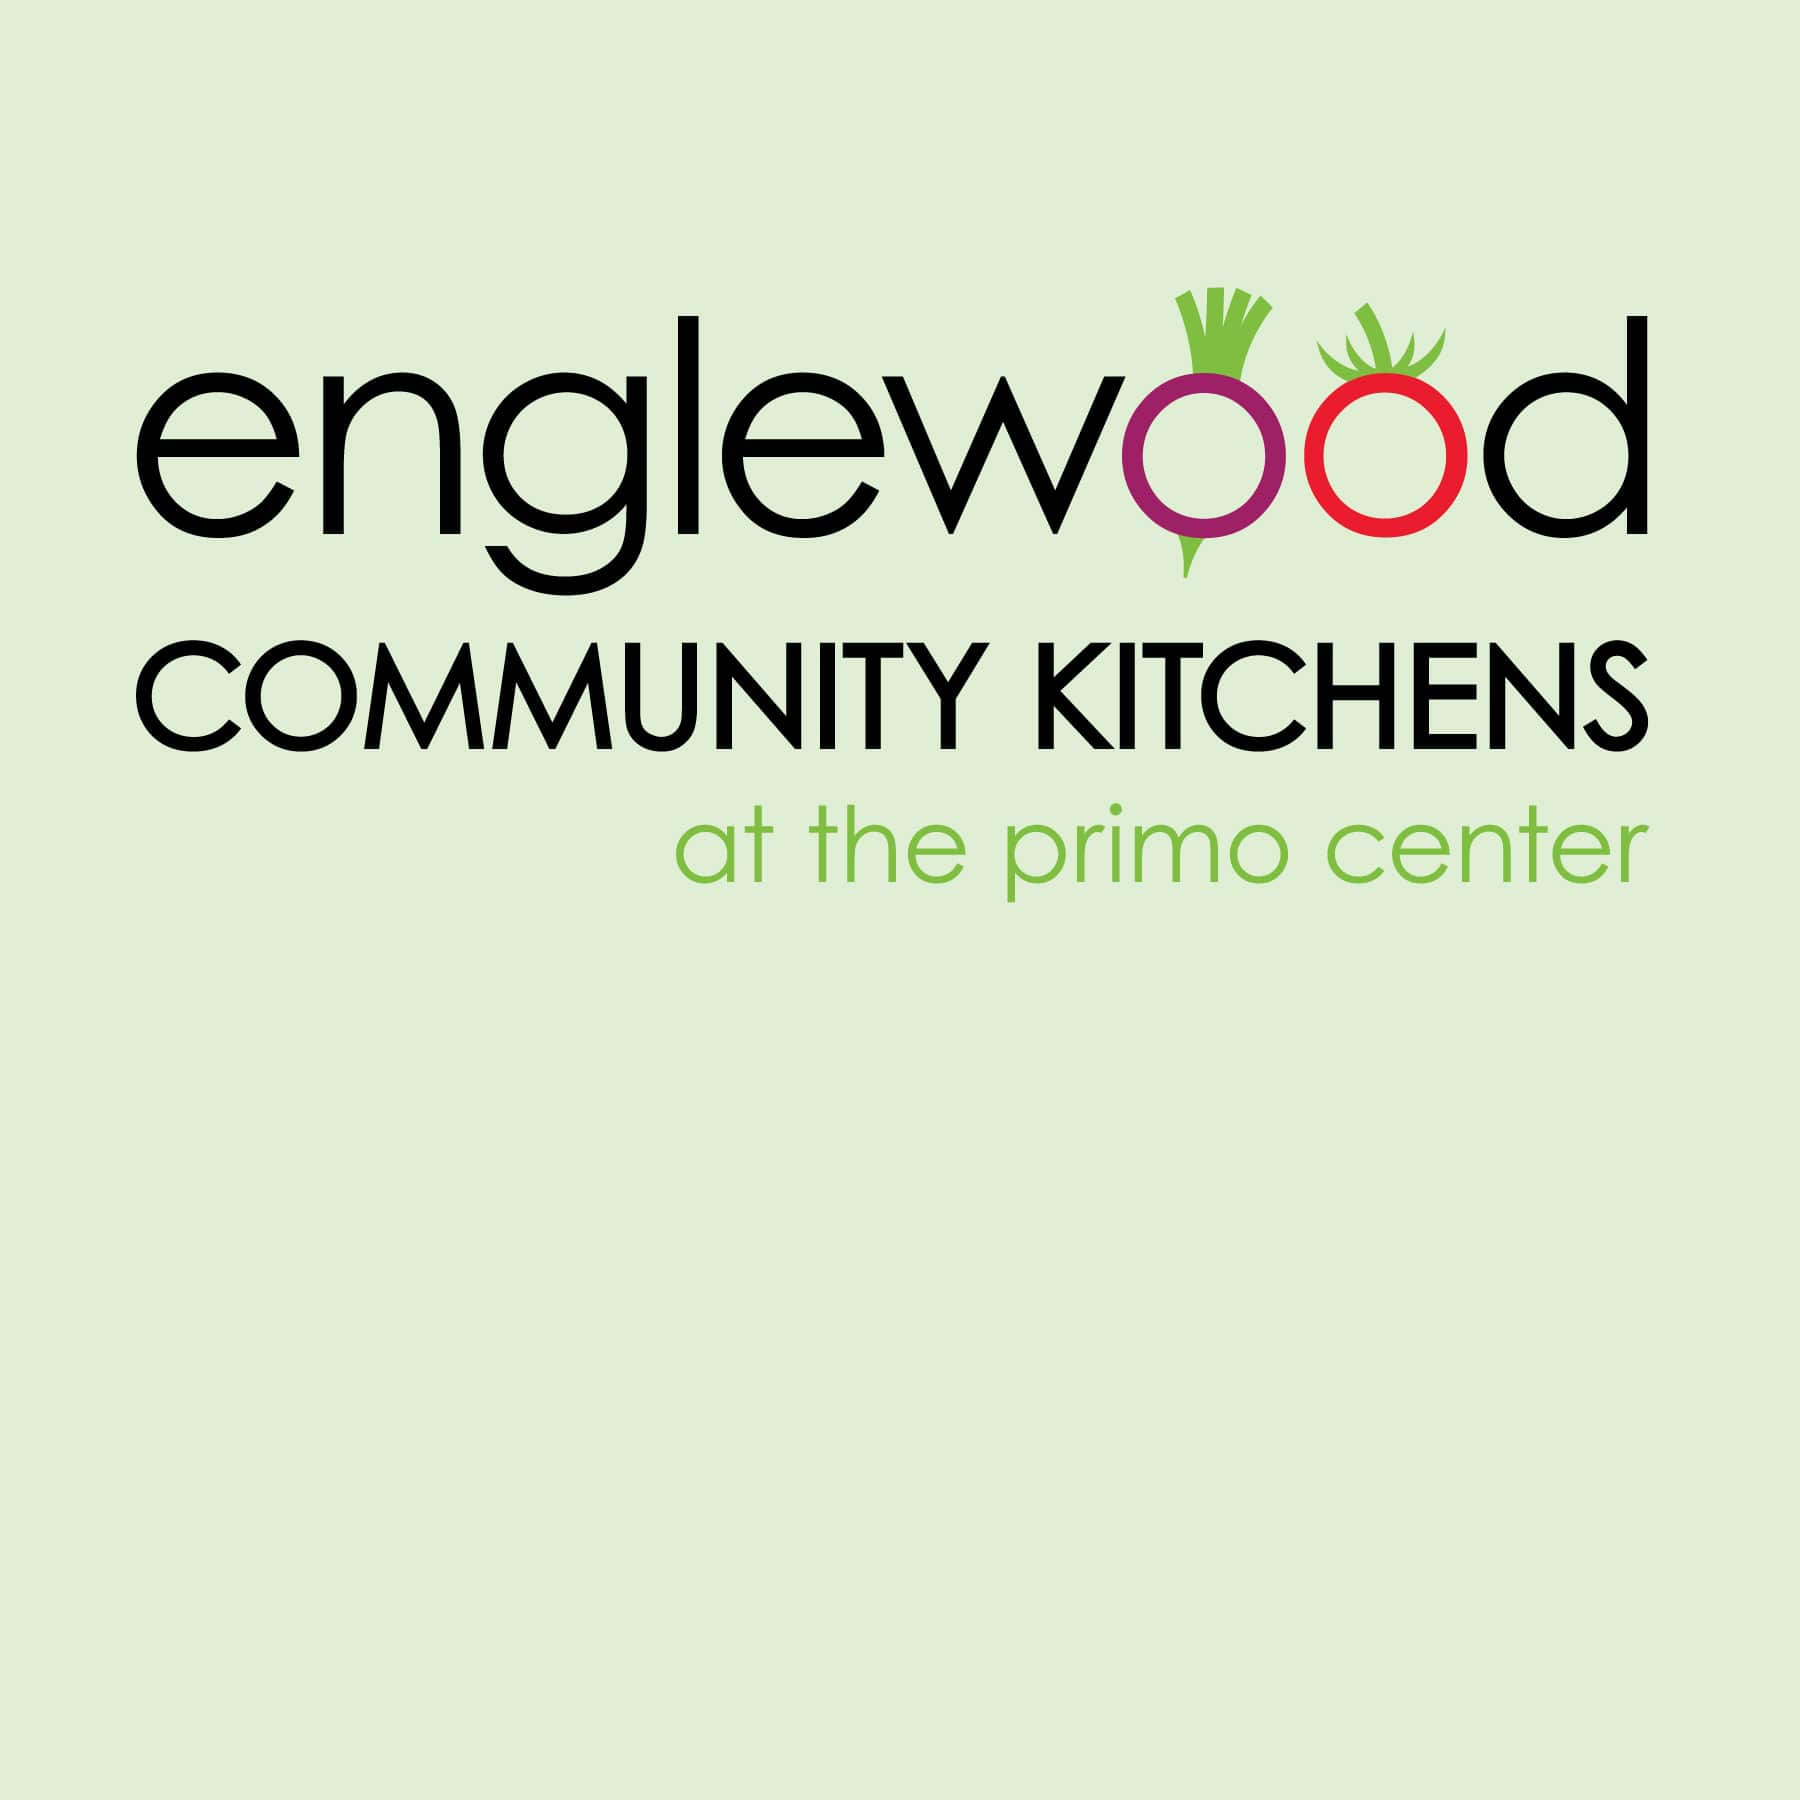 Englewood Community Kitchens logo